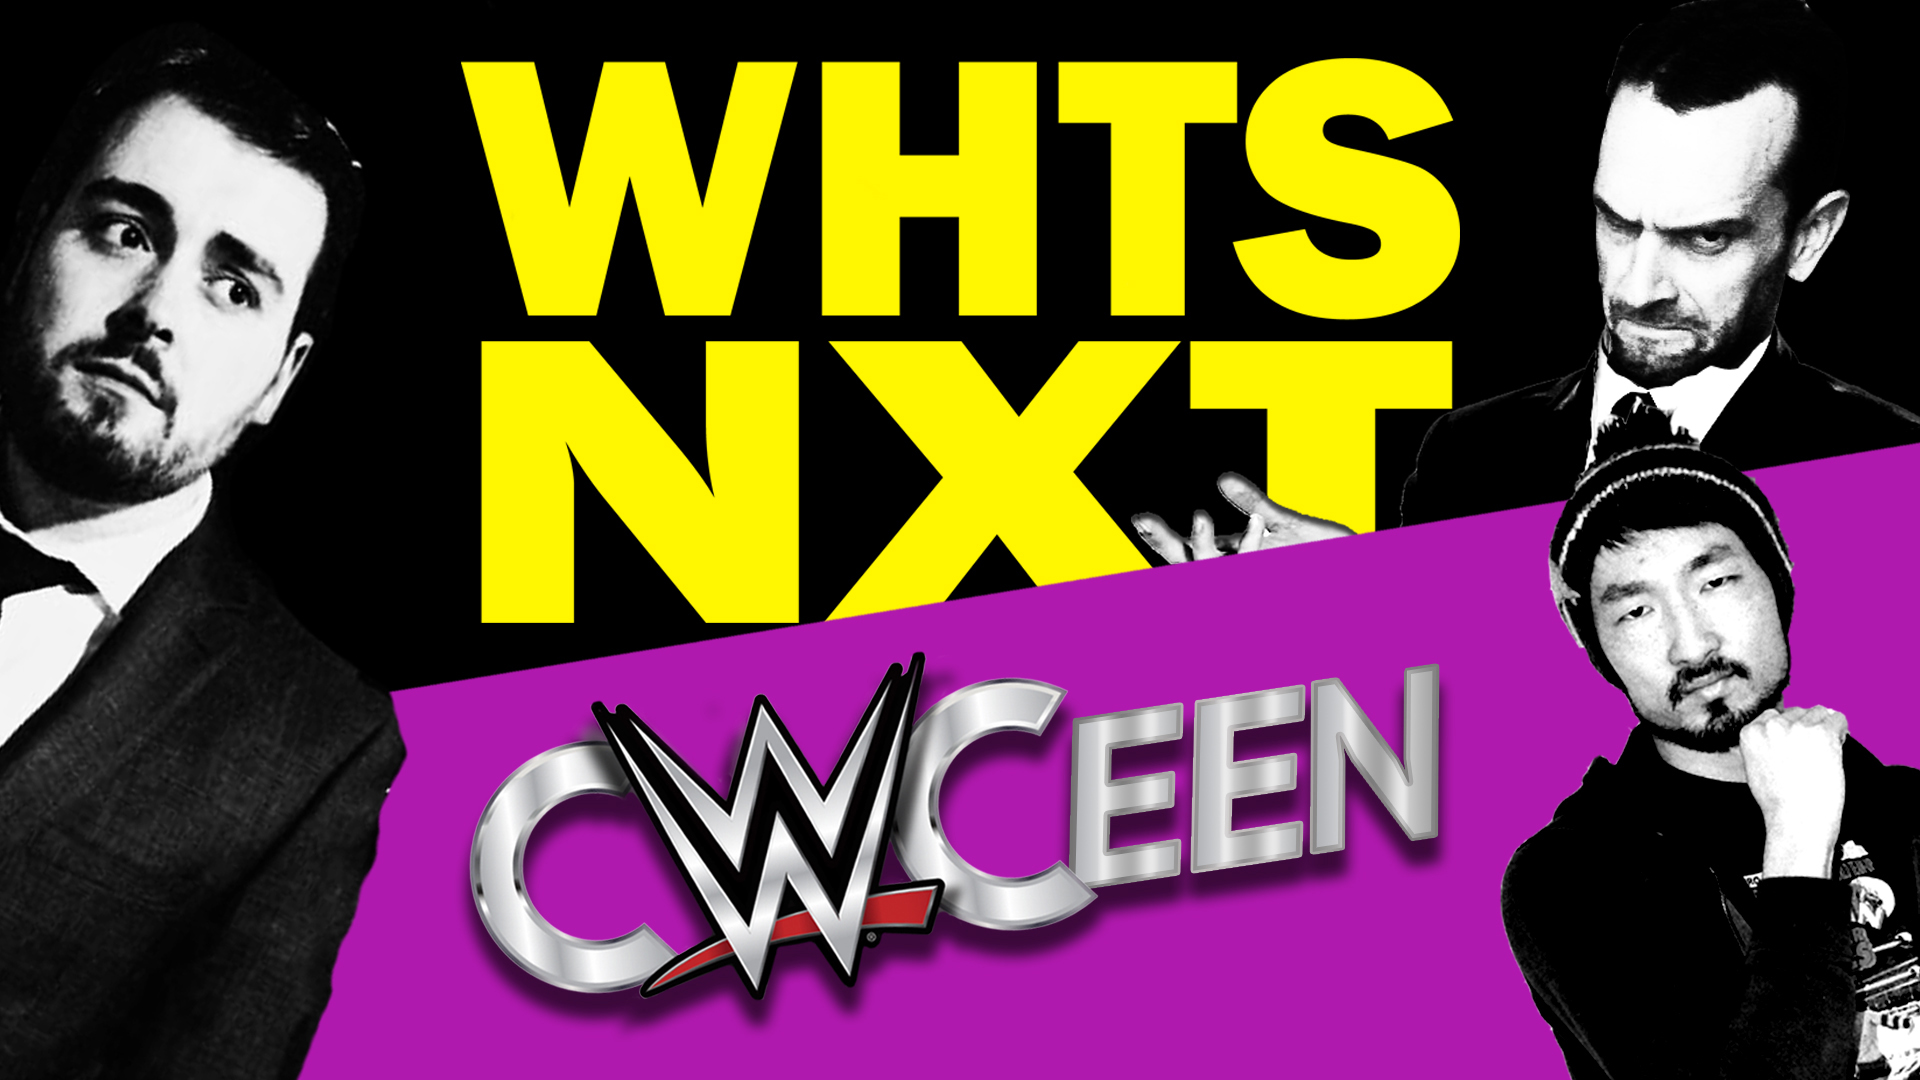 whtsNXT CWCeen dave